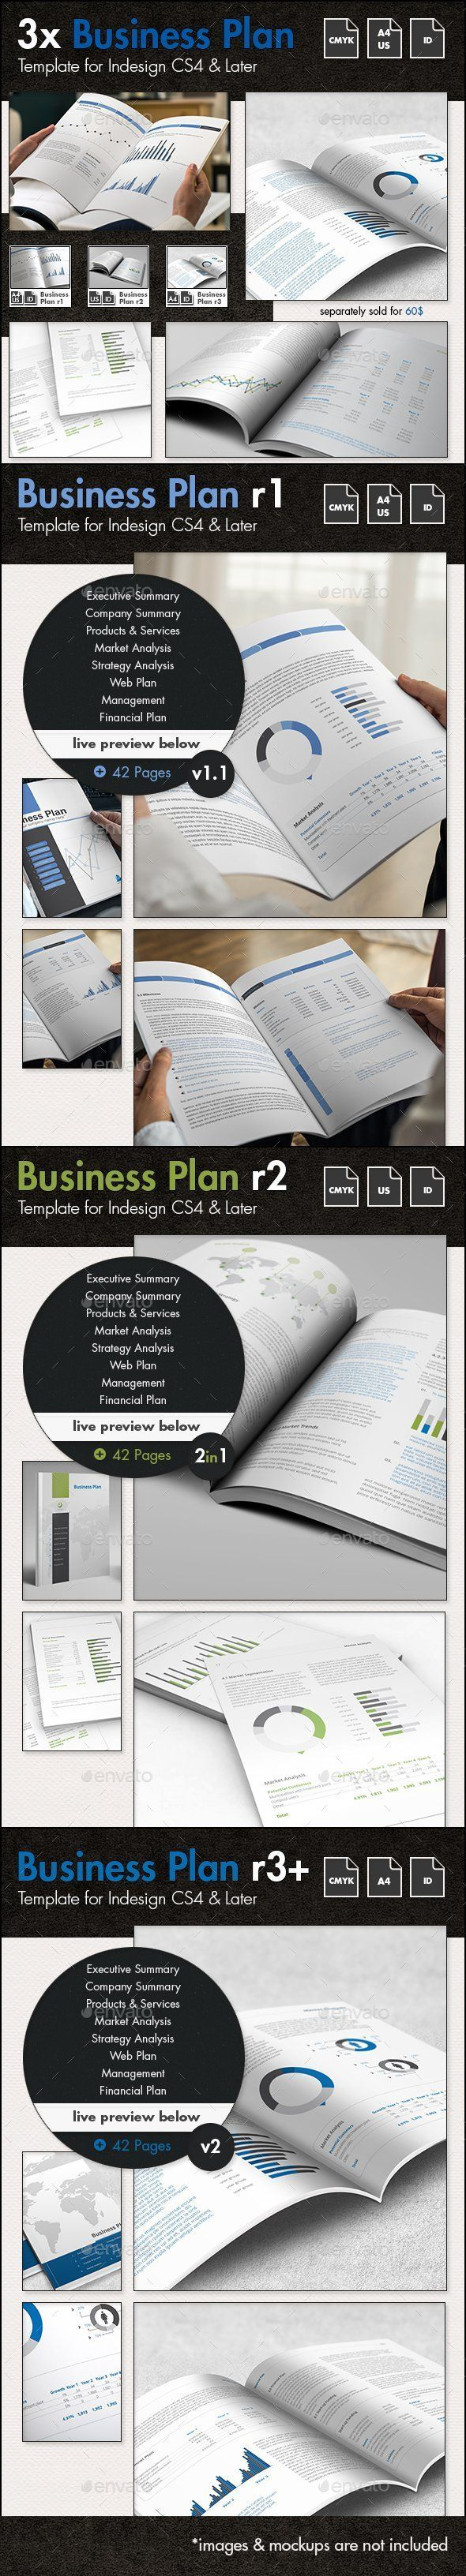 The Business Plan Templates Bundle